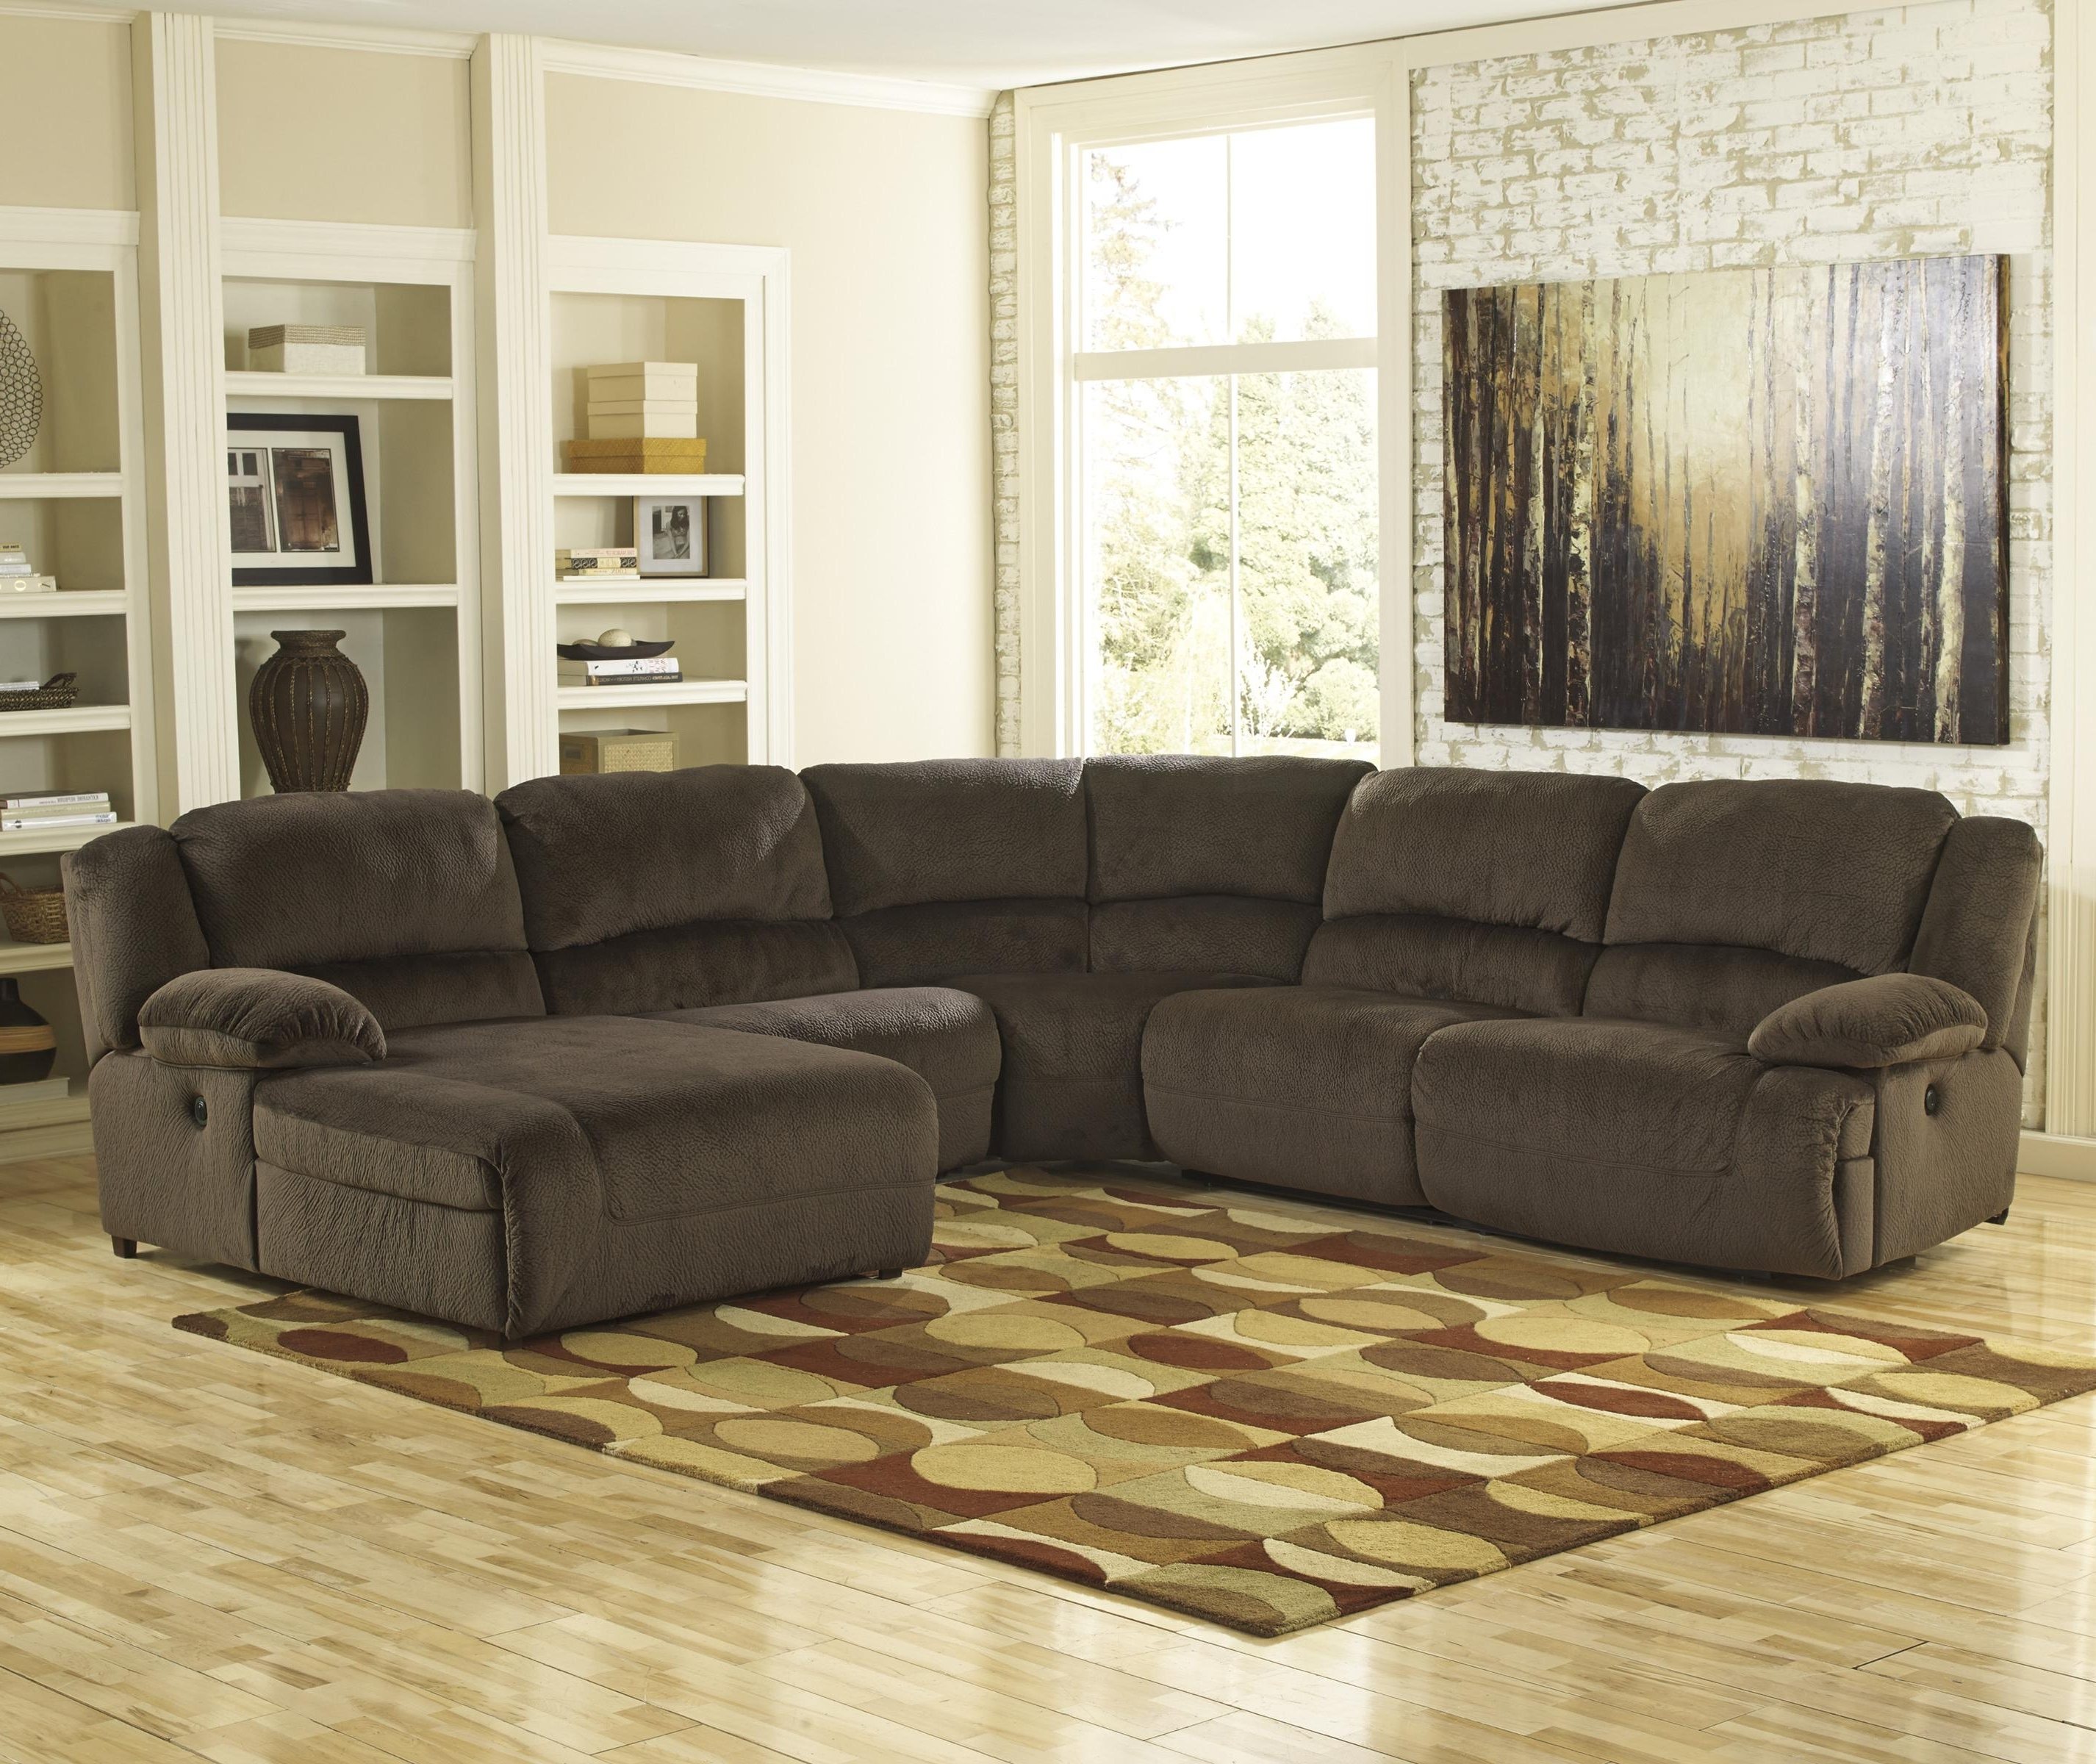 Most Popular Ashley Furniture Sectionals With Chaise Regarding Ashley Signature Design Toletta – Chocolate Reclining Sectional (View 9 of 15)